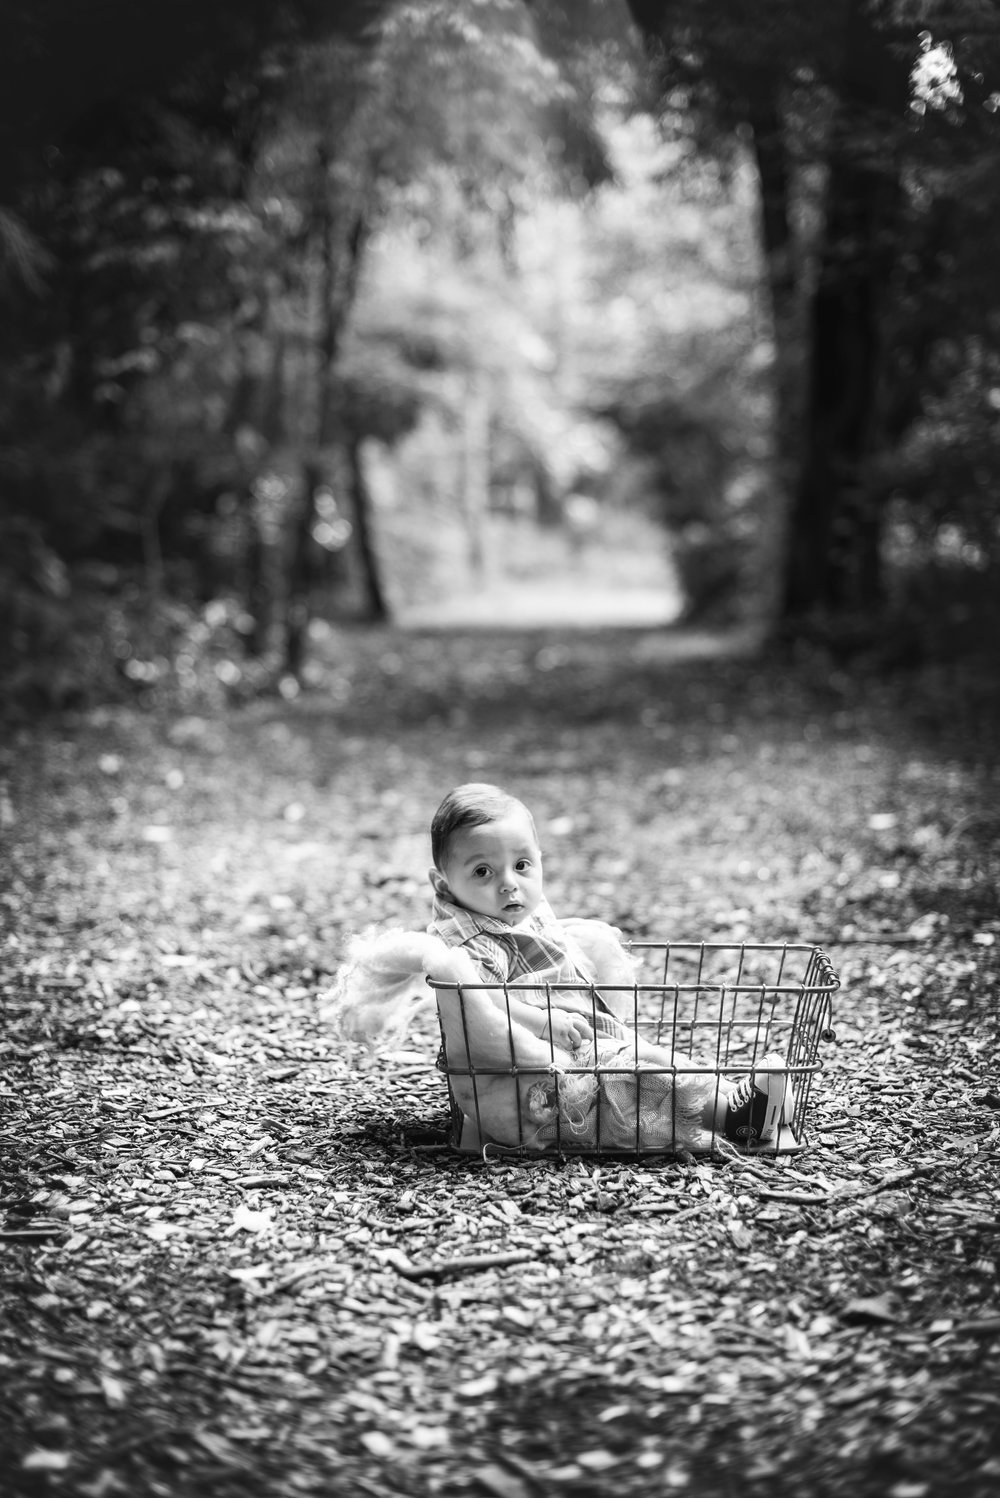 northwest indiana family photographer pumnea-4 bw.jpg